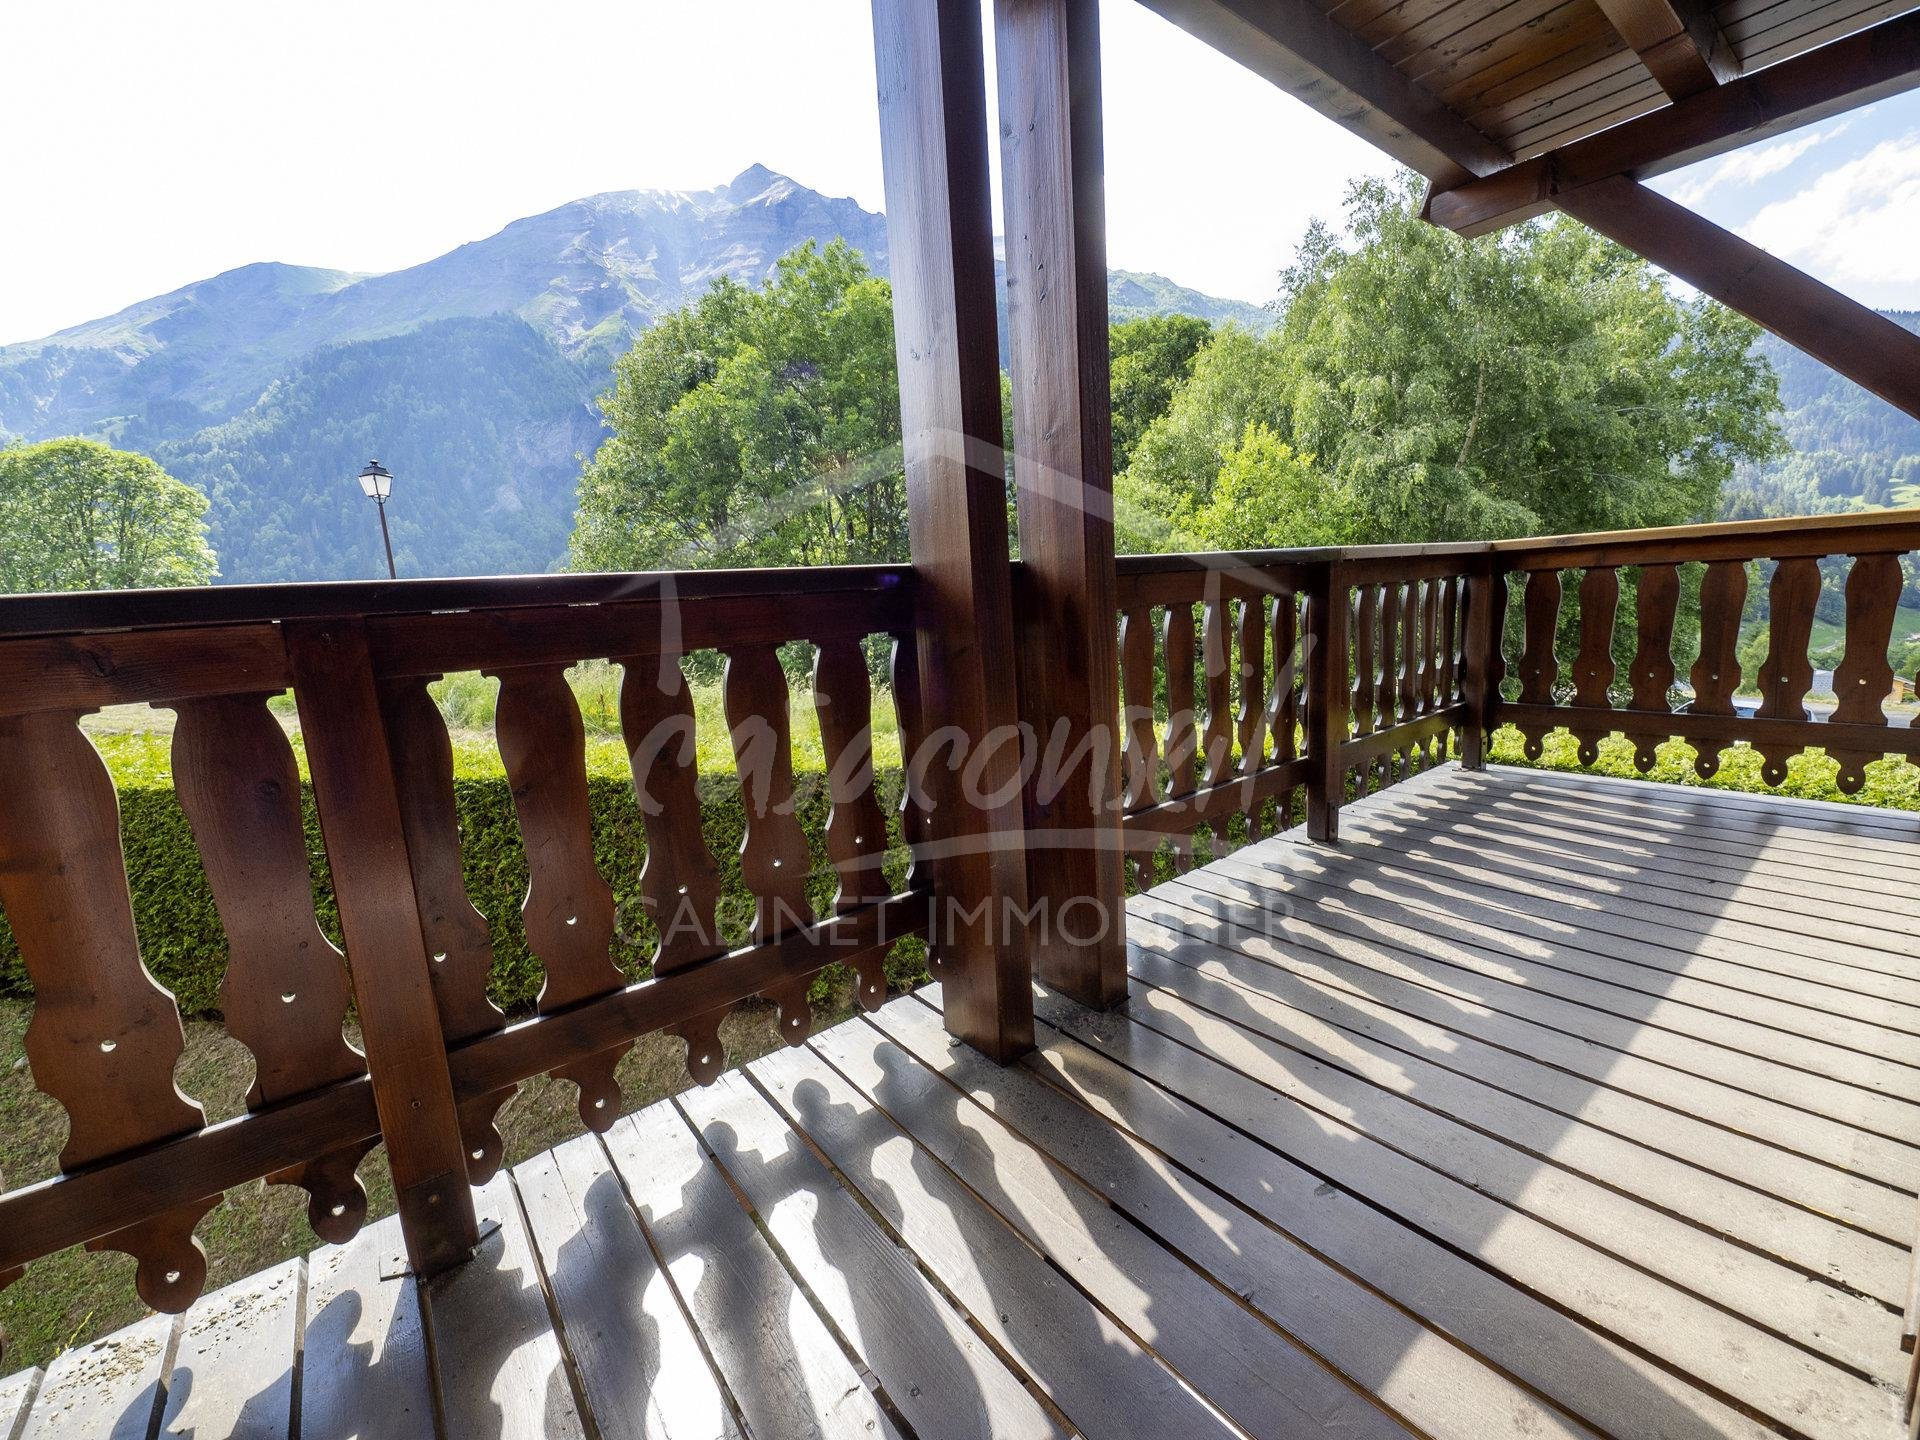 LES CONTAMINES MONTJOIE - 1 bedroom + bunks  - Quiet and sunny